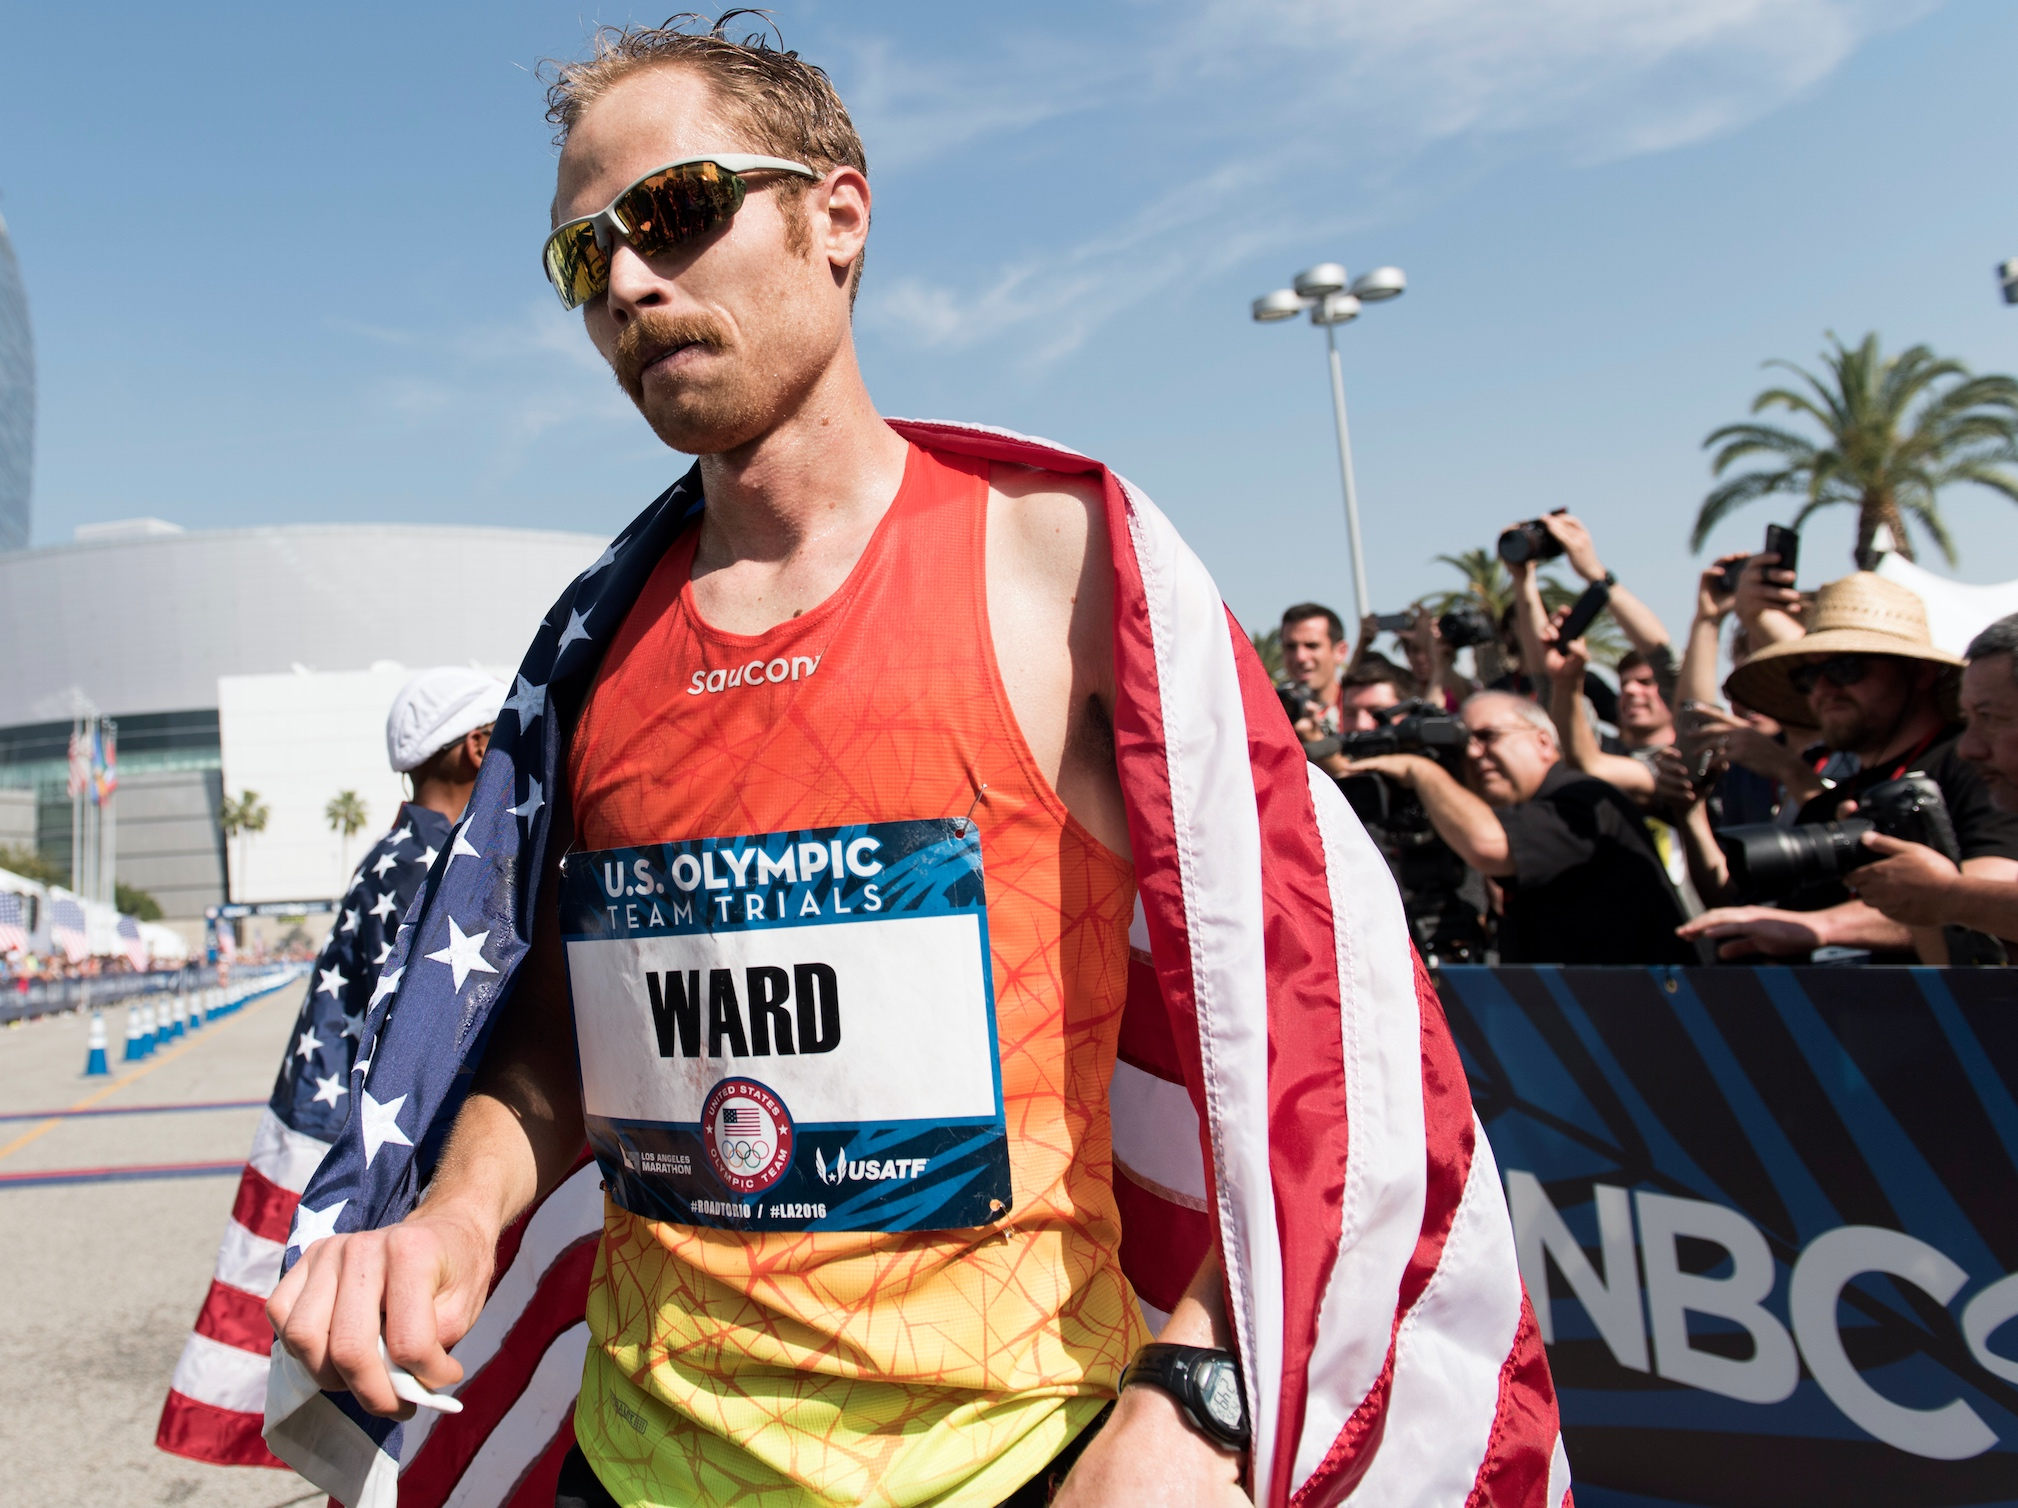 Jared Ward walks from the finish line with a United States Flag on his back during the U.S. Olympic marathon trials, Saturday, Feb. 13, 2016, in Los Angeles.